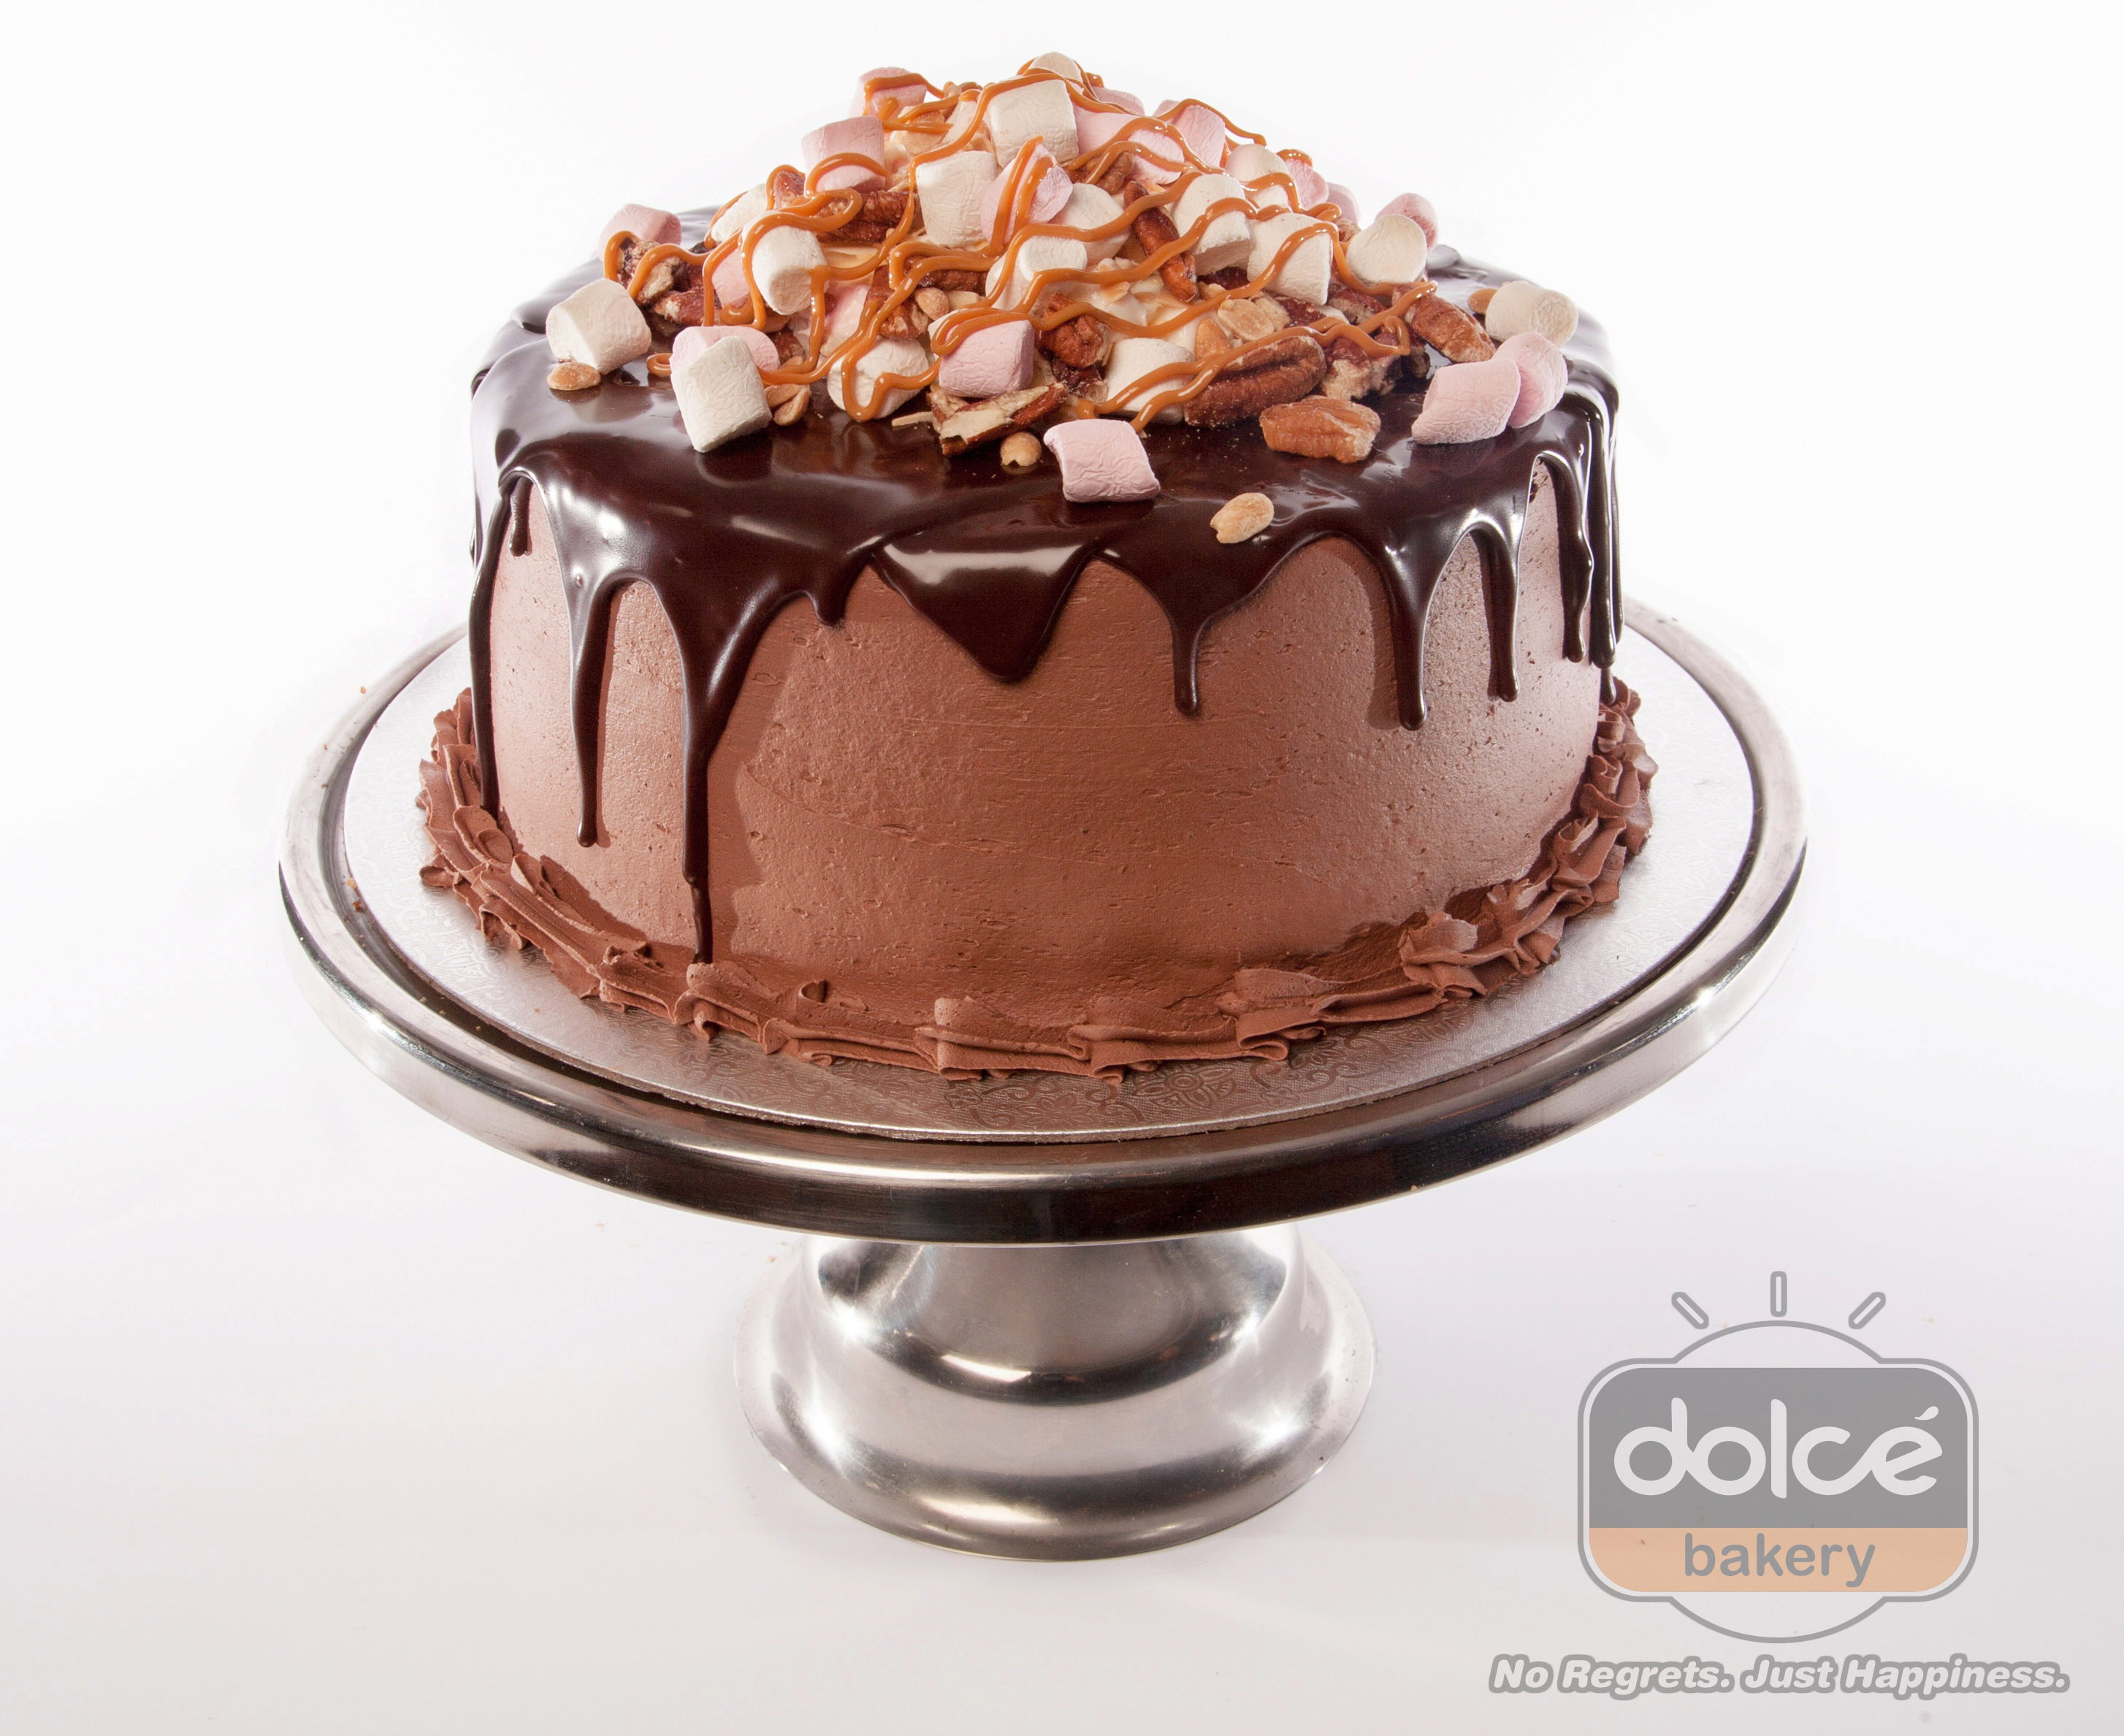 Dolce Bakery Kue By Hbahar Pal Cakes